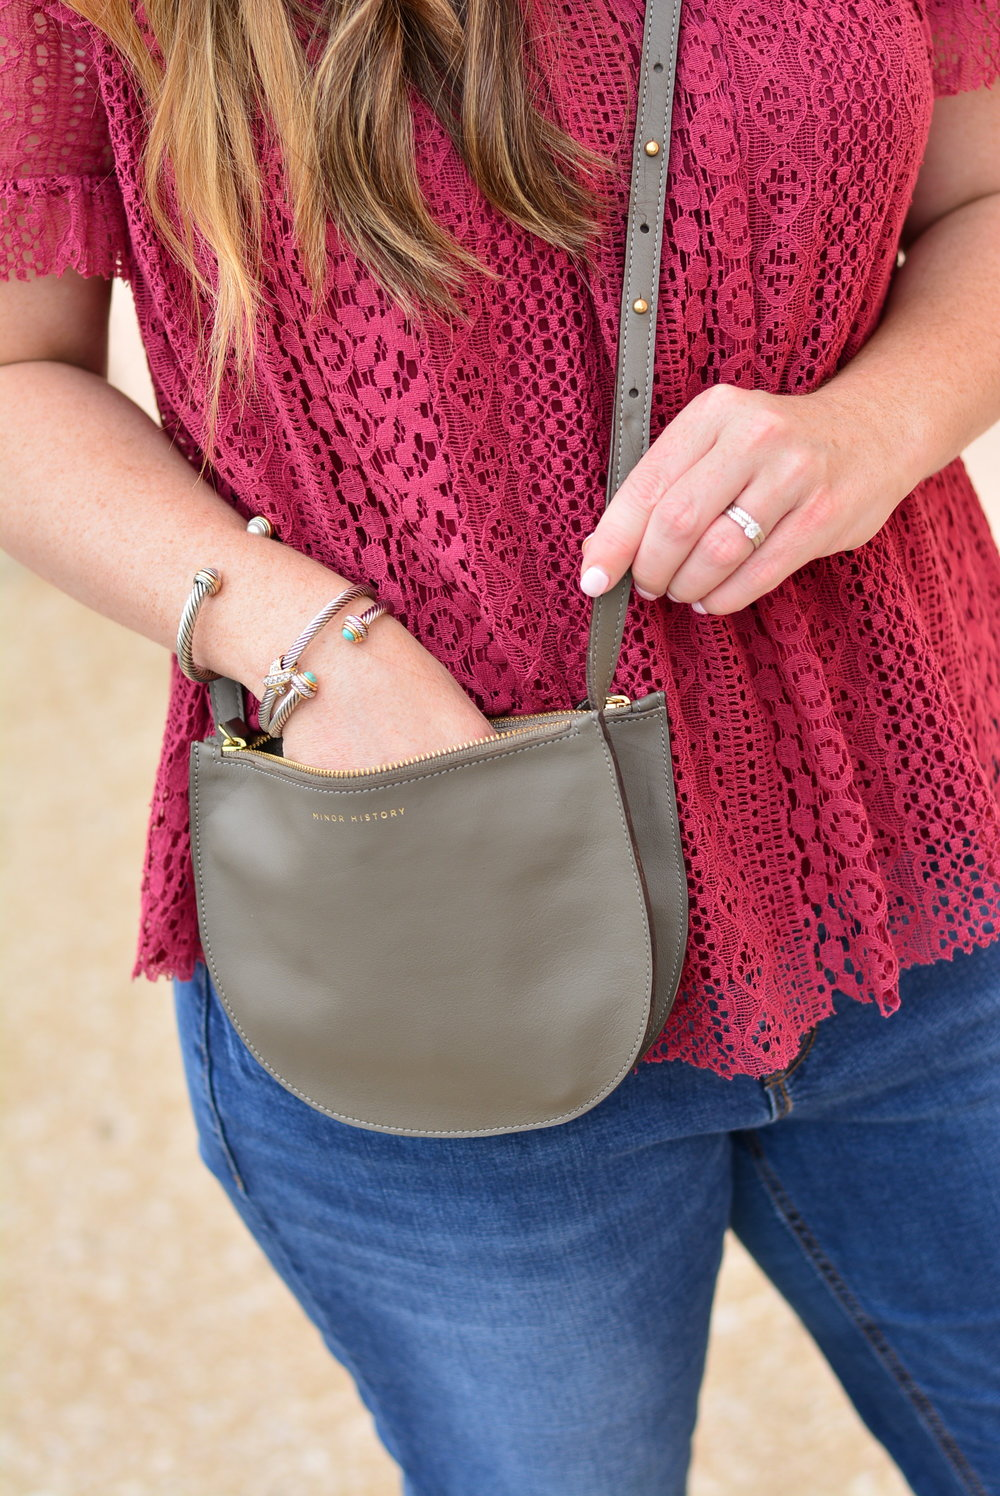 Gray crossbody purse - Minor History Smile